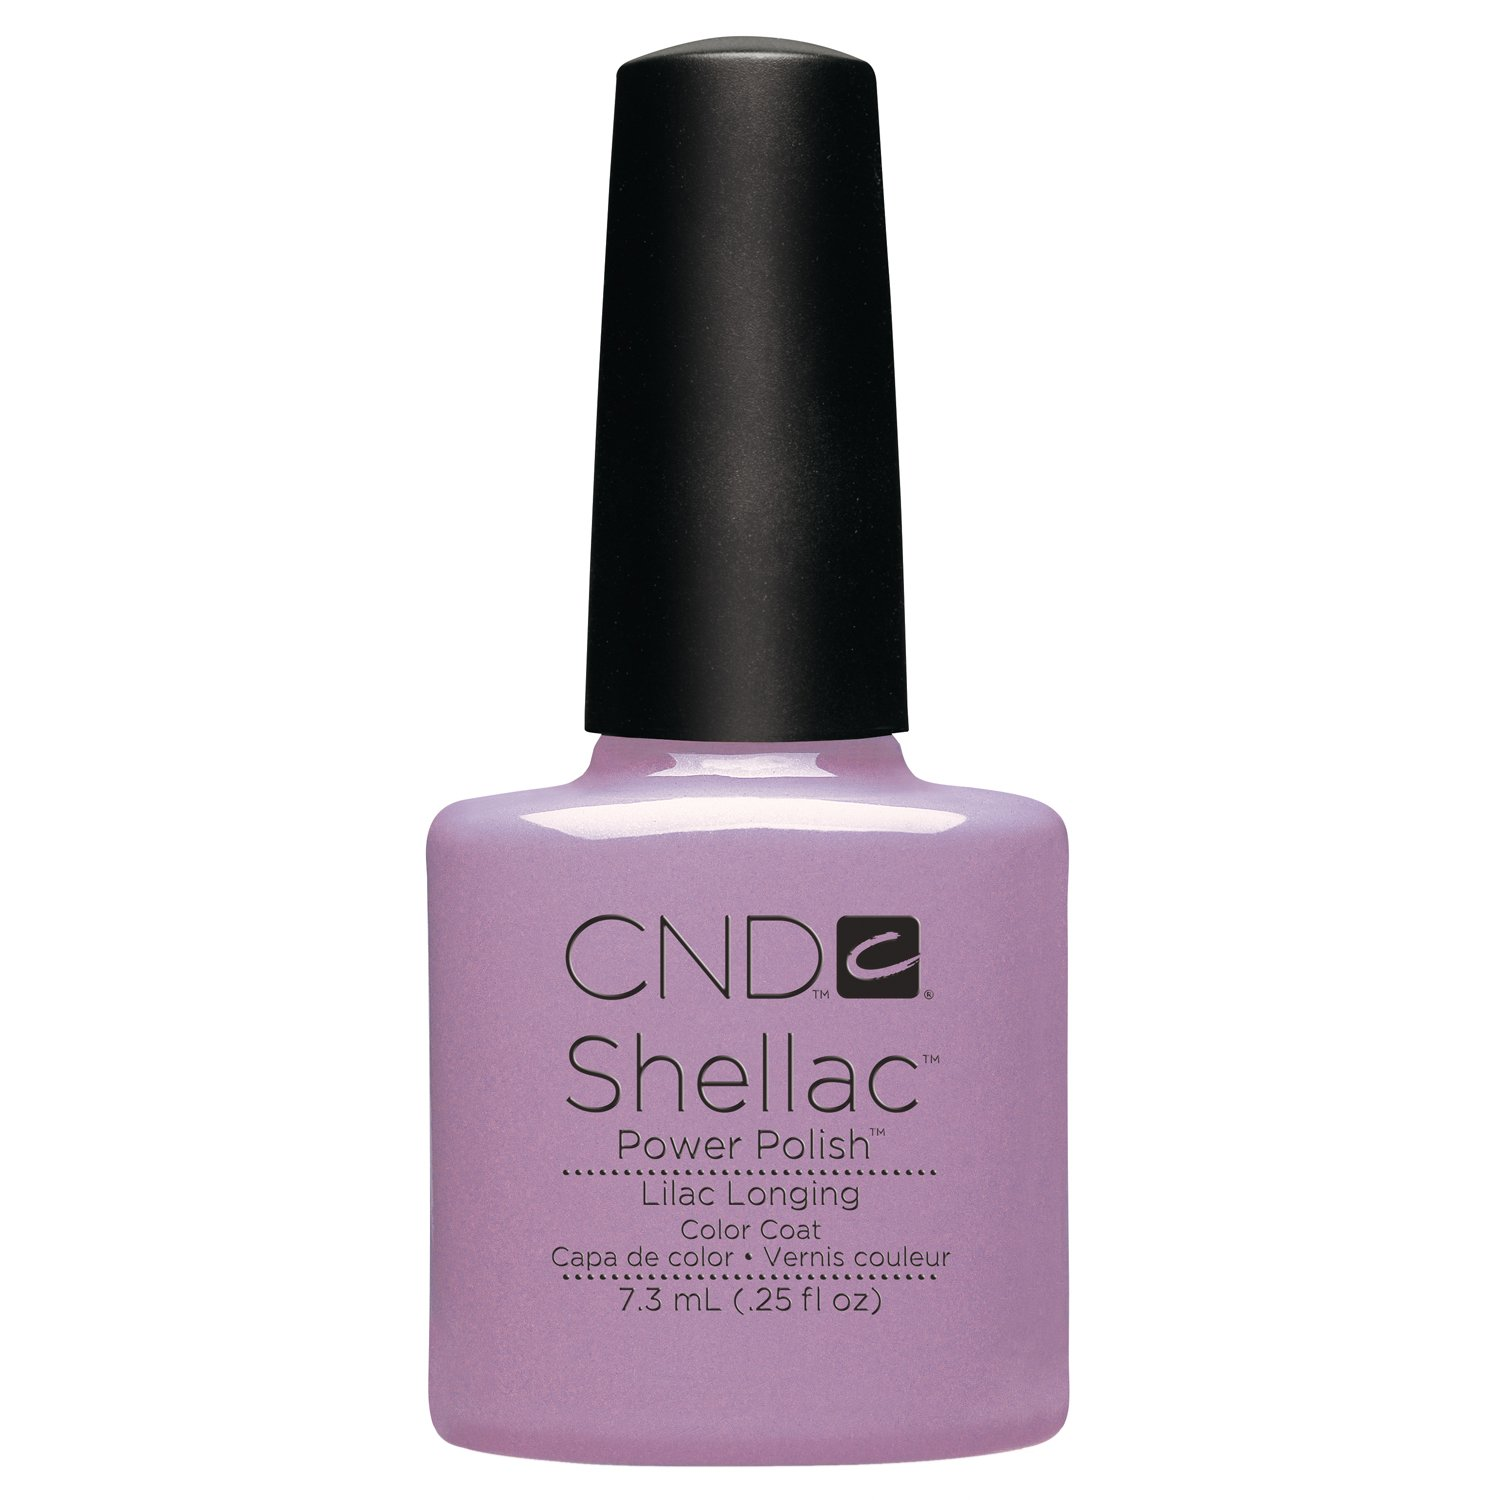 CND Shellac Power Polish Color Coat - Lilac Longing CND Nail Products CND009